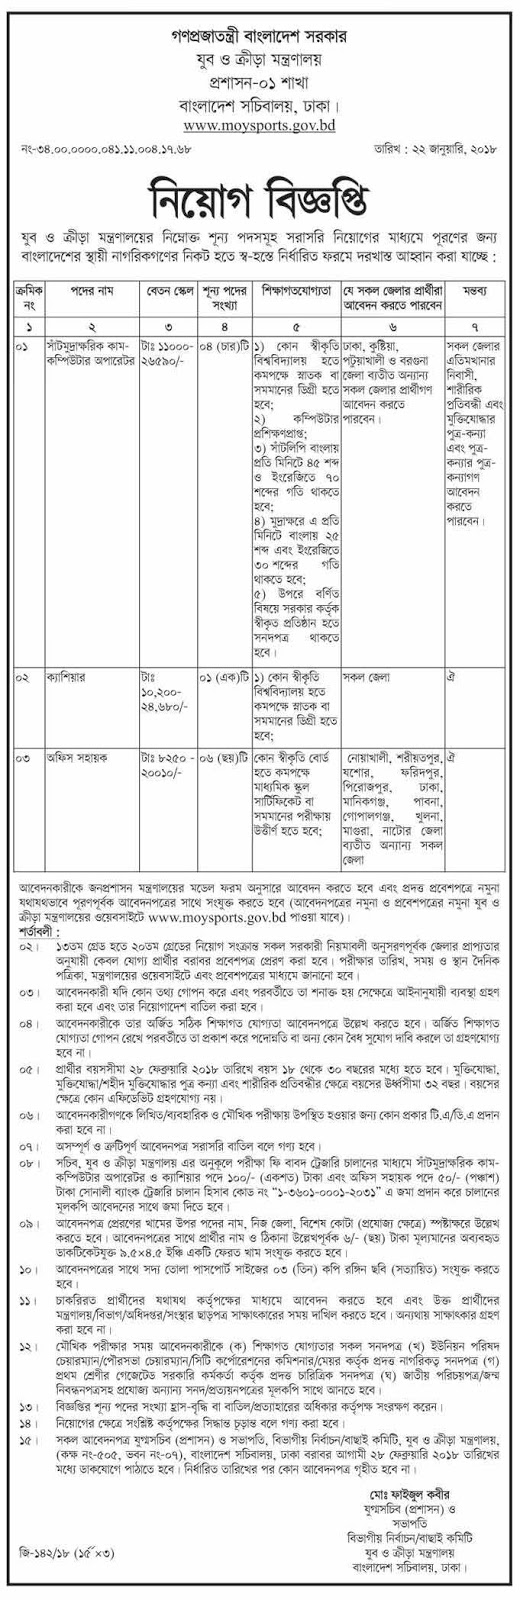 Ministry of Youth and Sports Job Circular 2018 www.moysports.gov.bd 2